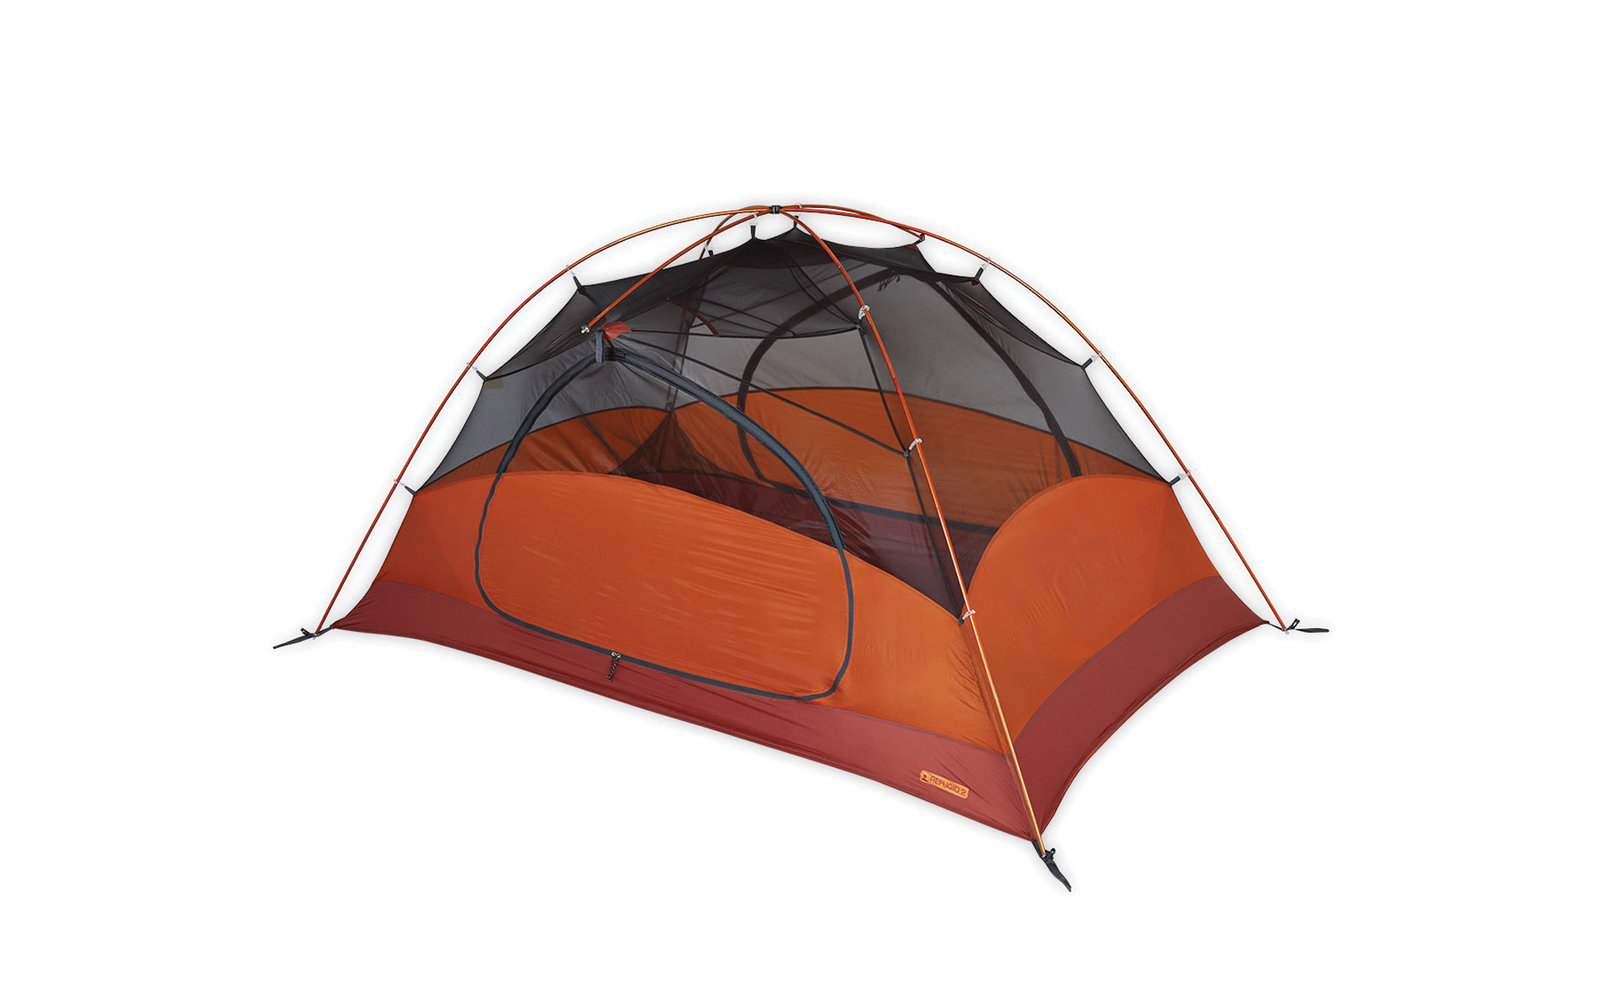 Multipurpose Camping Tents